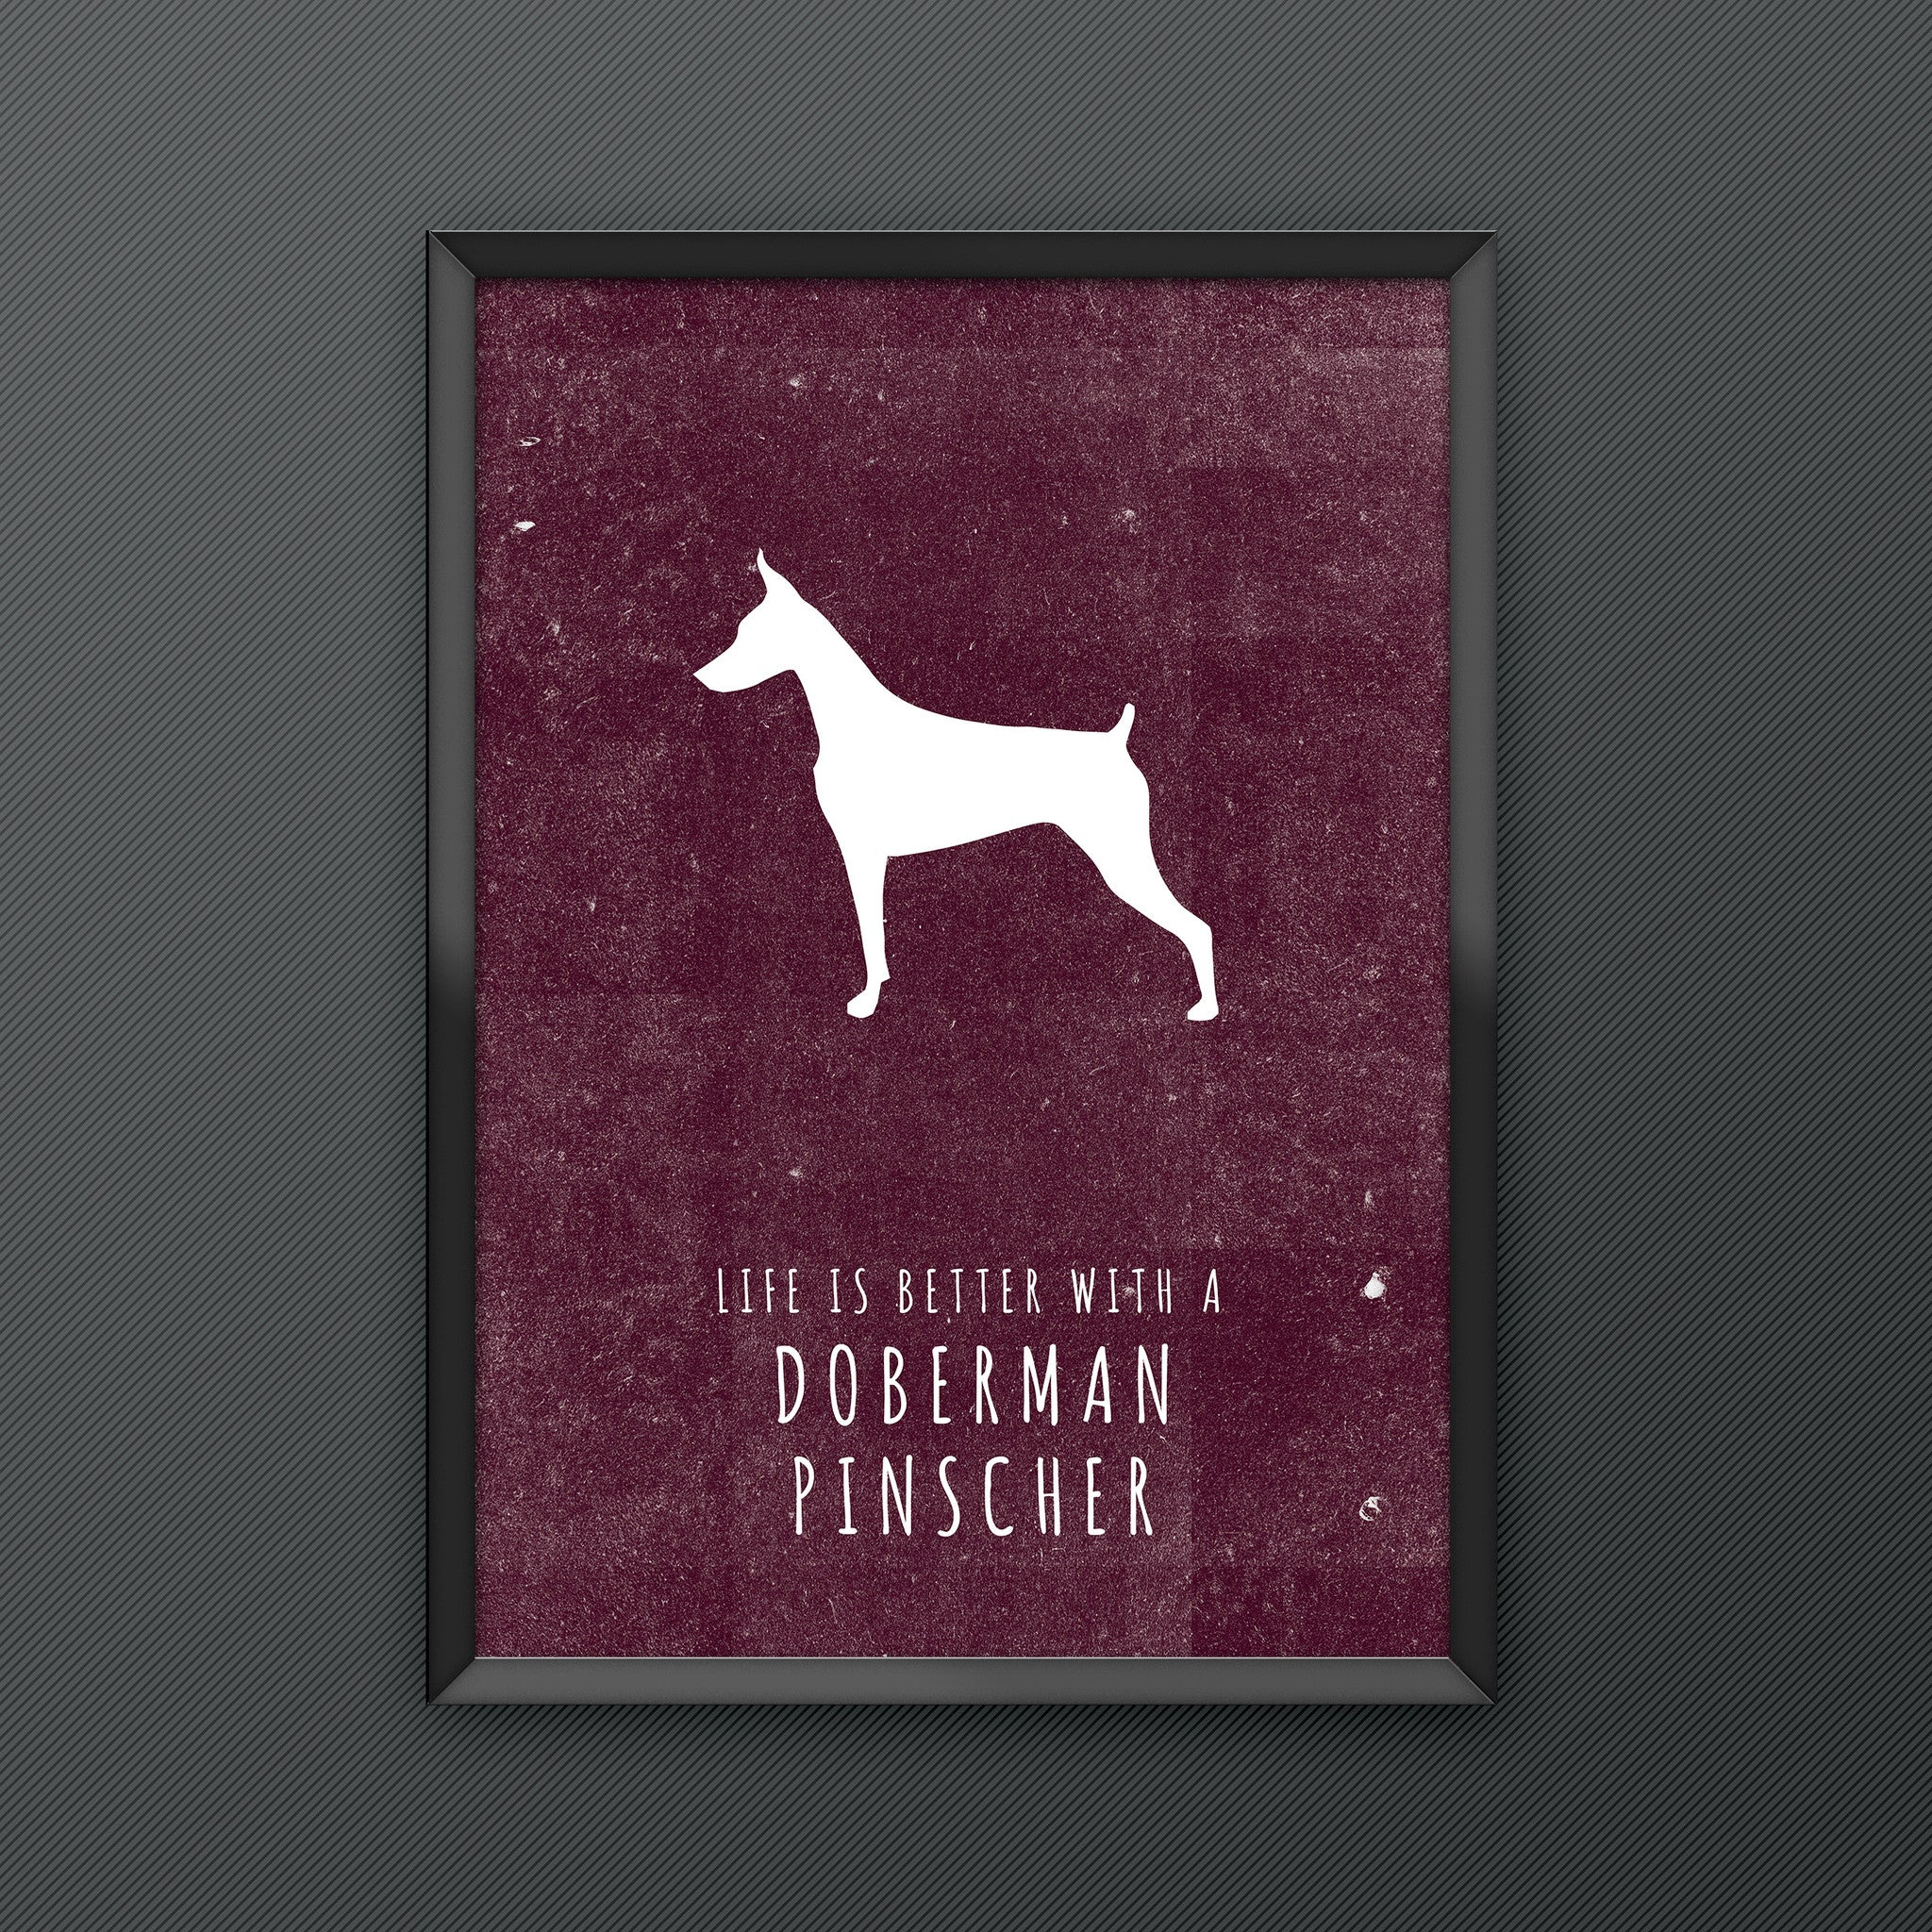 Doberman Pinscher Dog Print